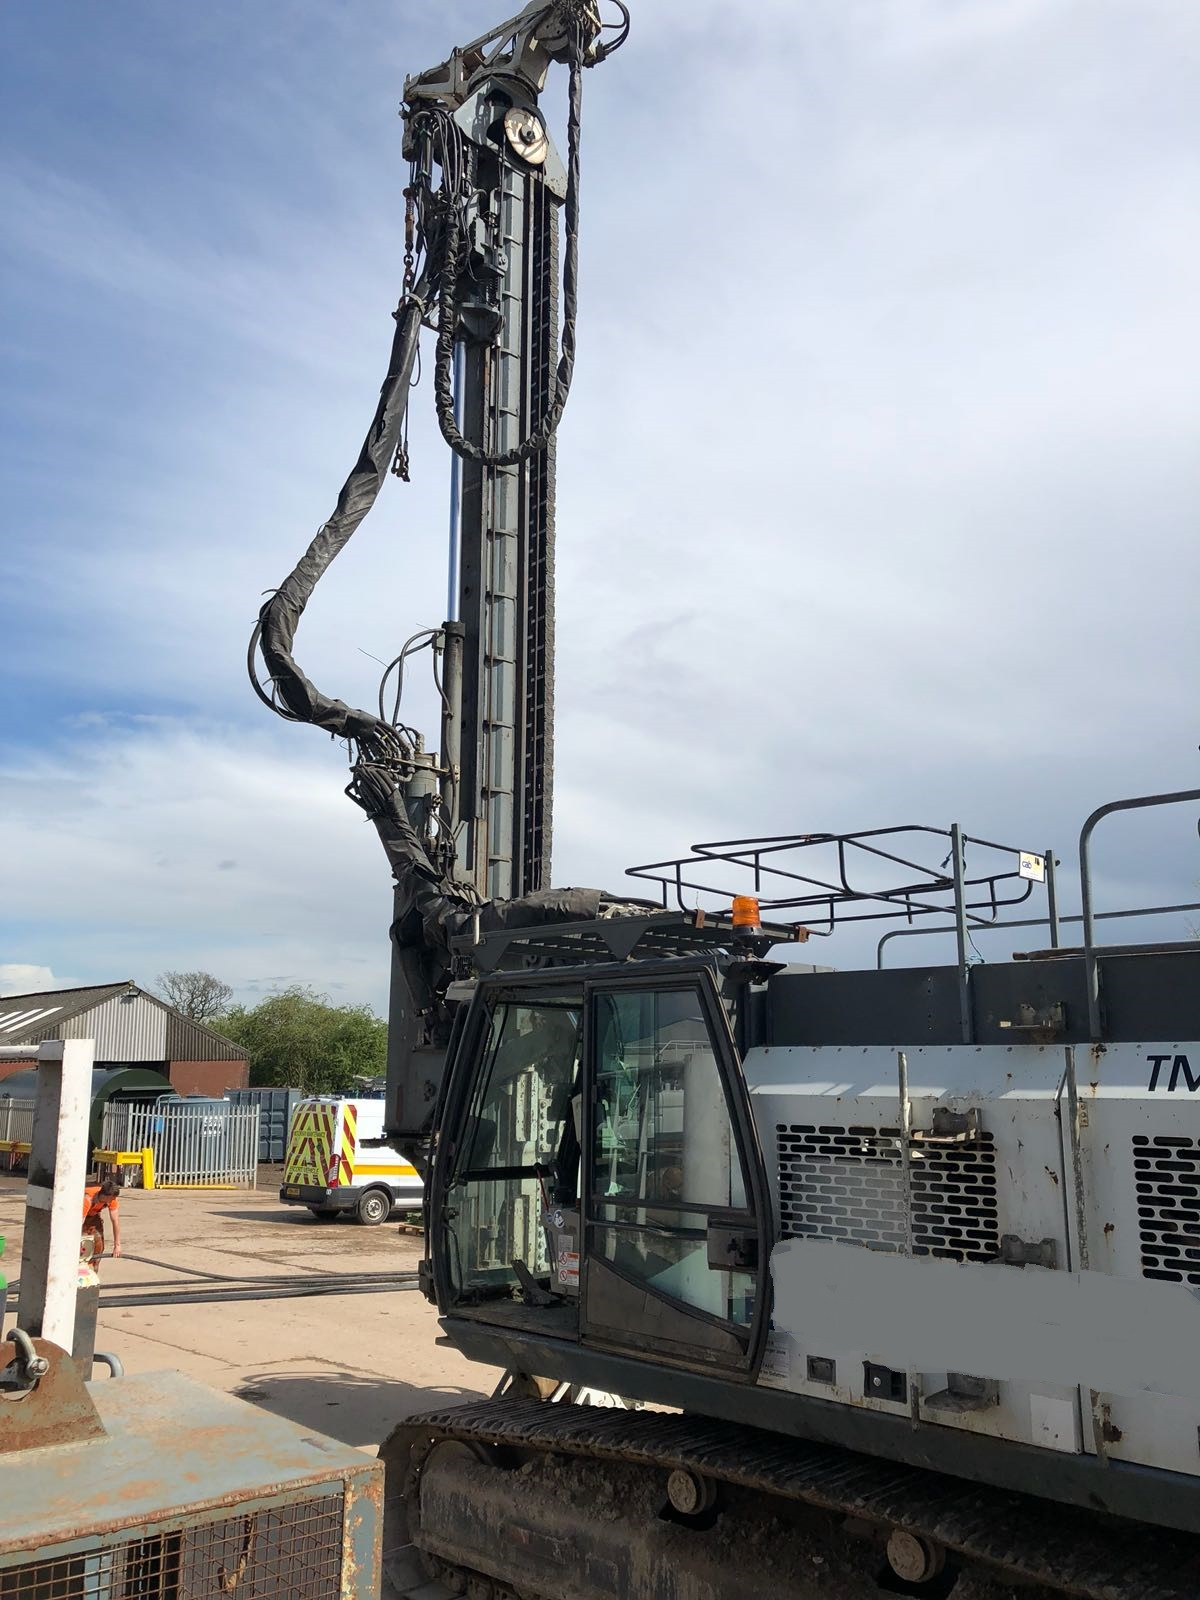 Used ABI TM 13/16 telescopic leader rig for sale